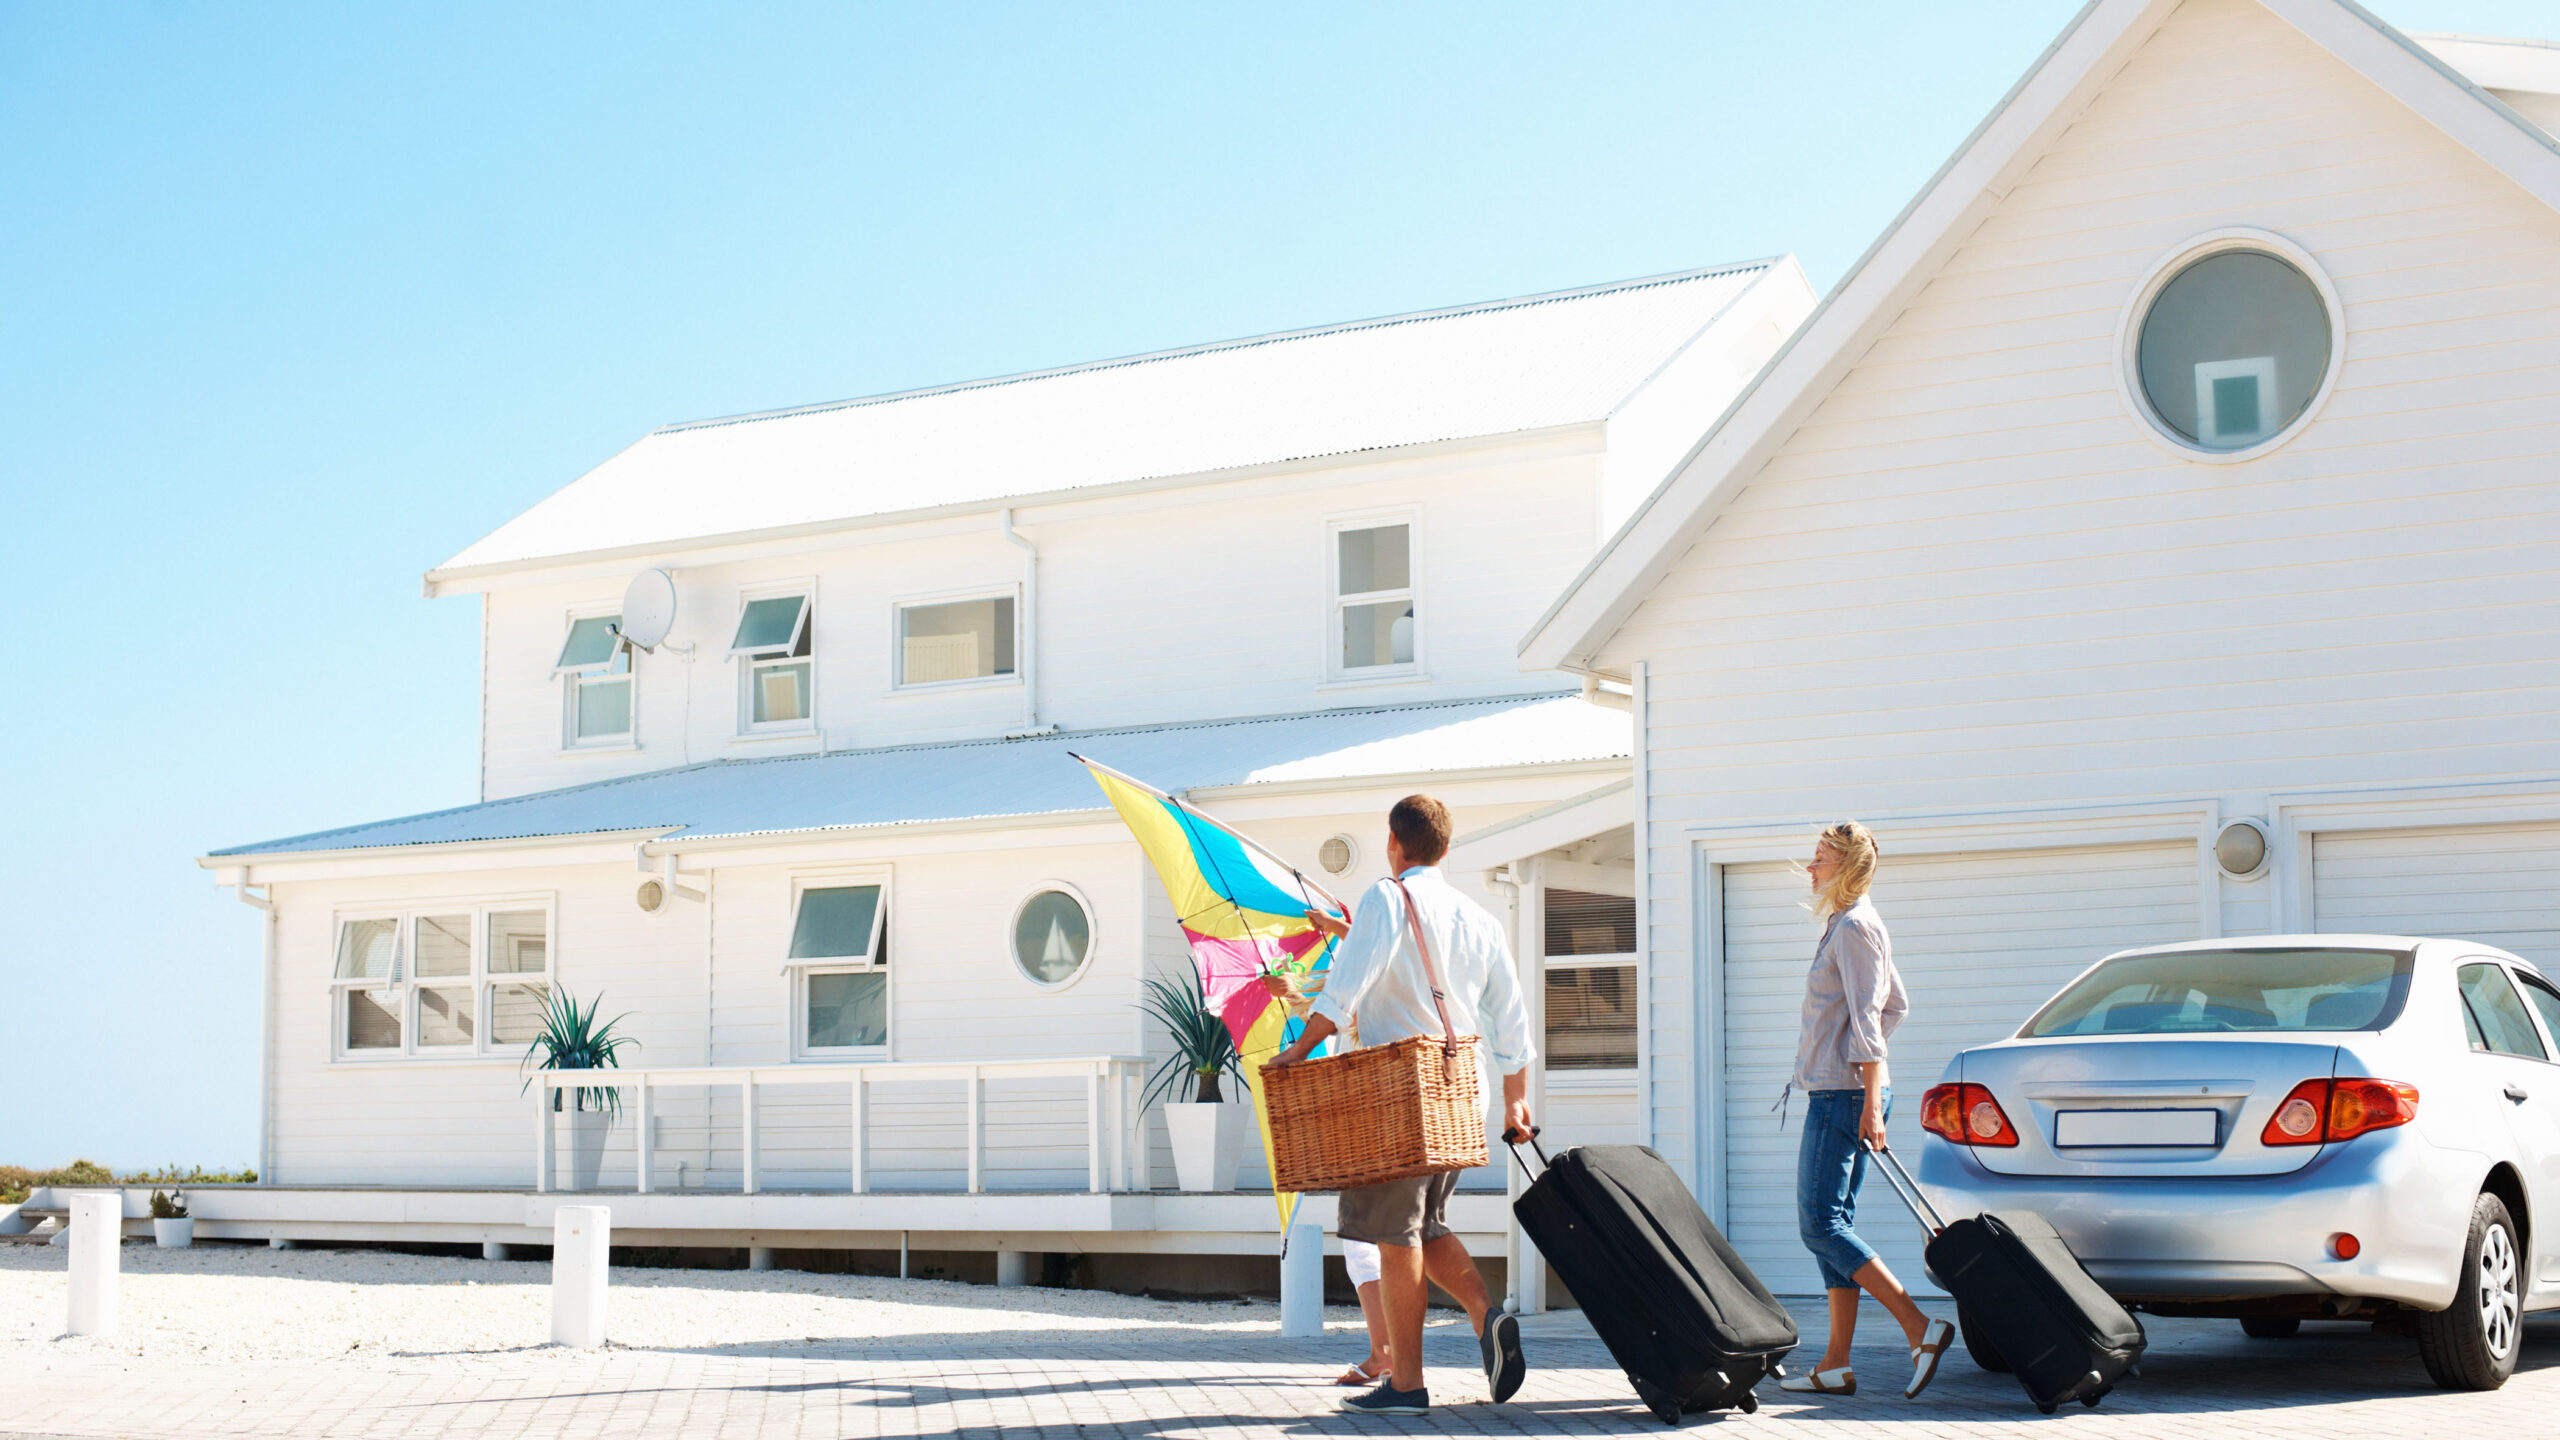 6 Things to Know About Listing Your Vacation Home on Airbnb